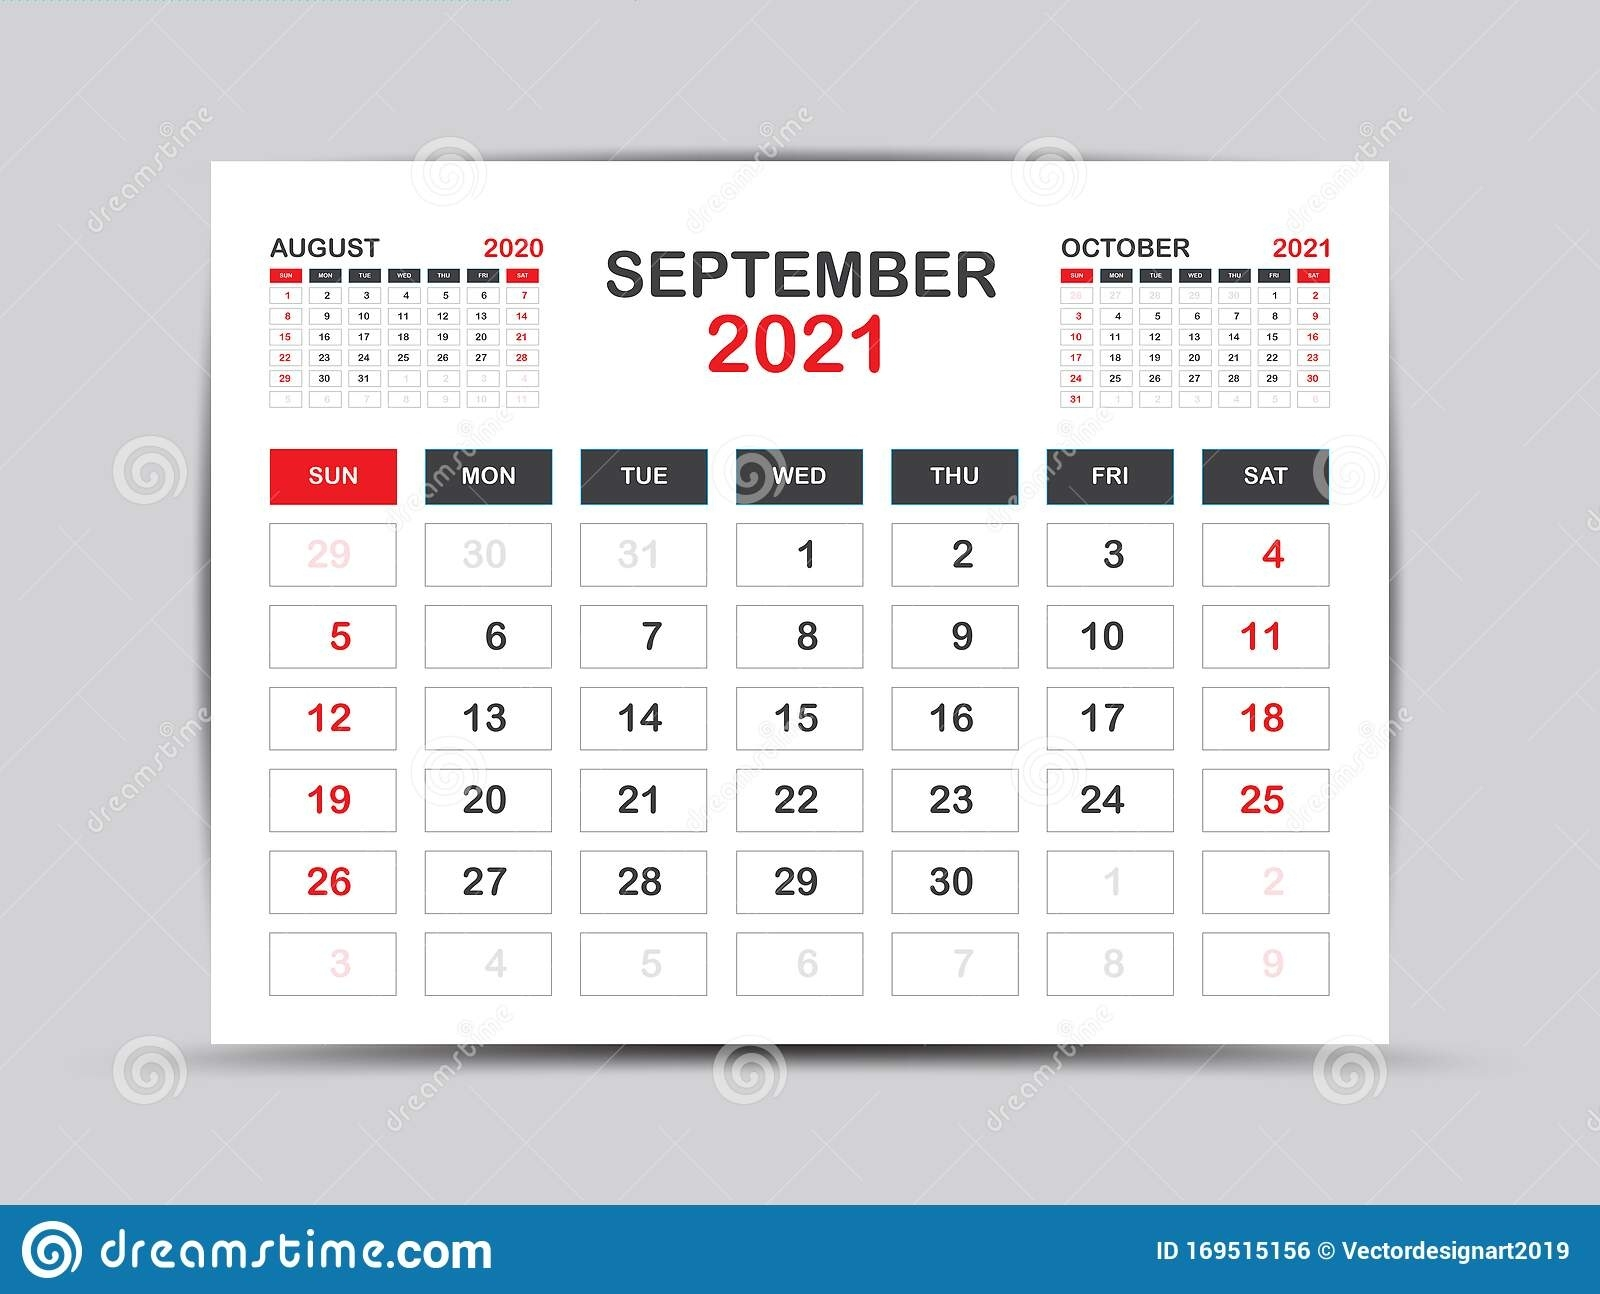 Calendar 2021 Template. September Page Vector For Calendar 2021 Template. Table, Wall, Desk September 2021 Calendar Starting Monday